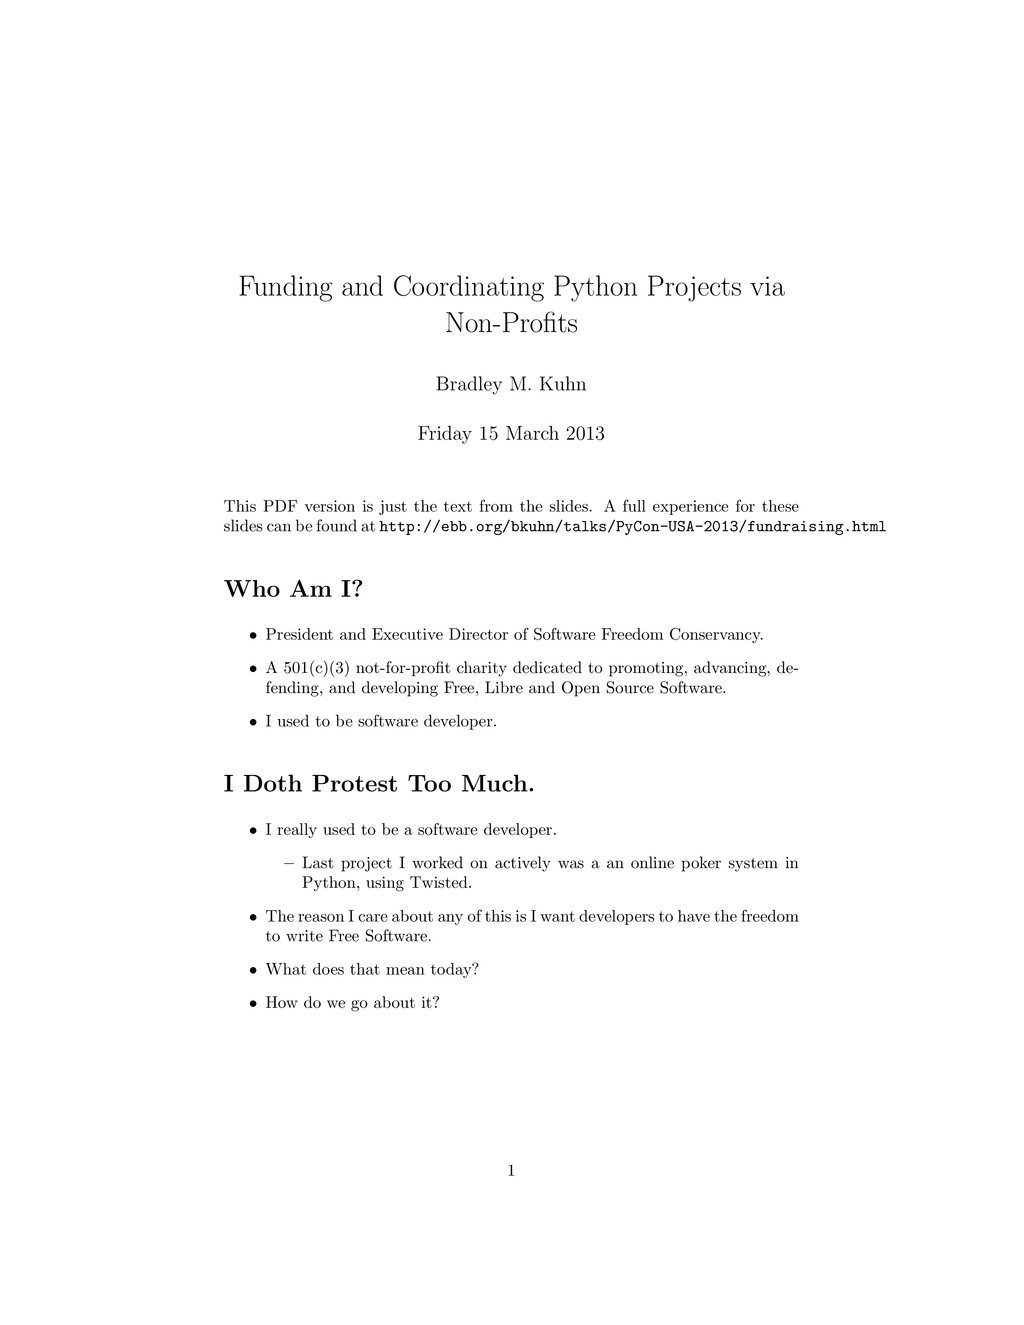 Funding and Coordinating Python Projects via No...